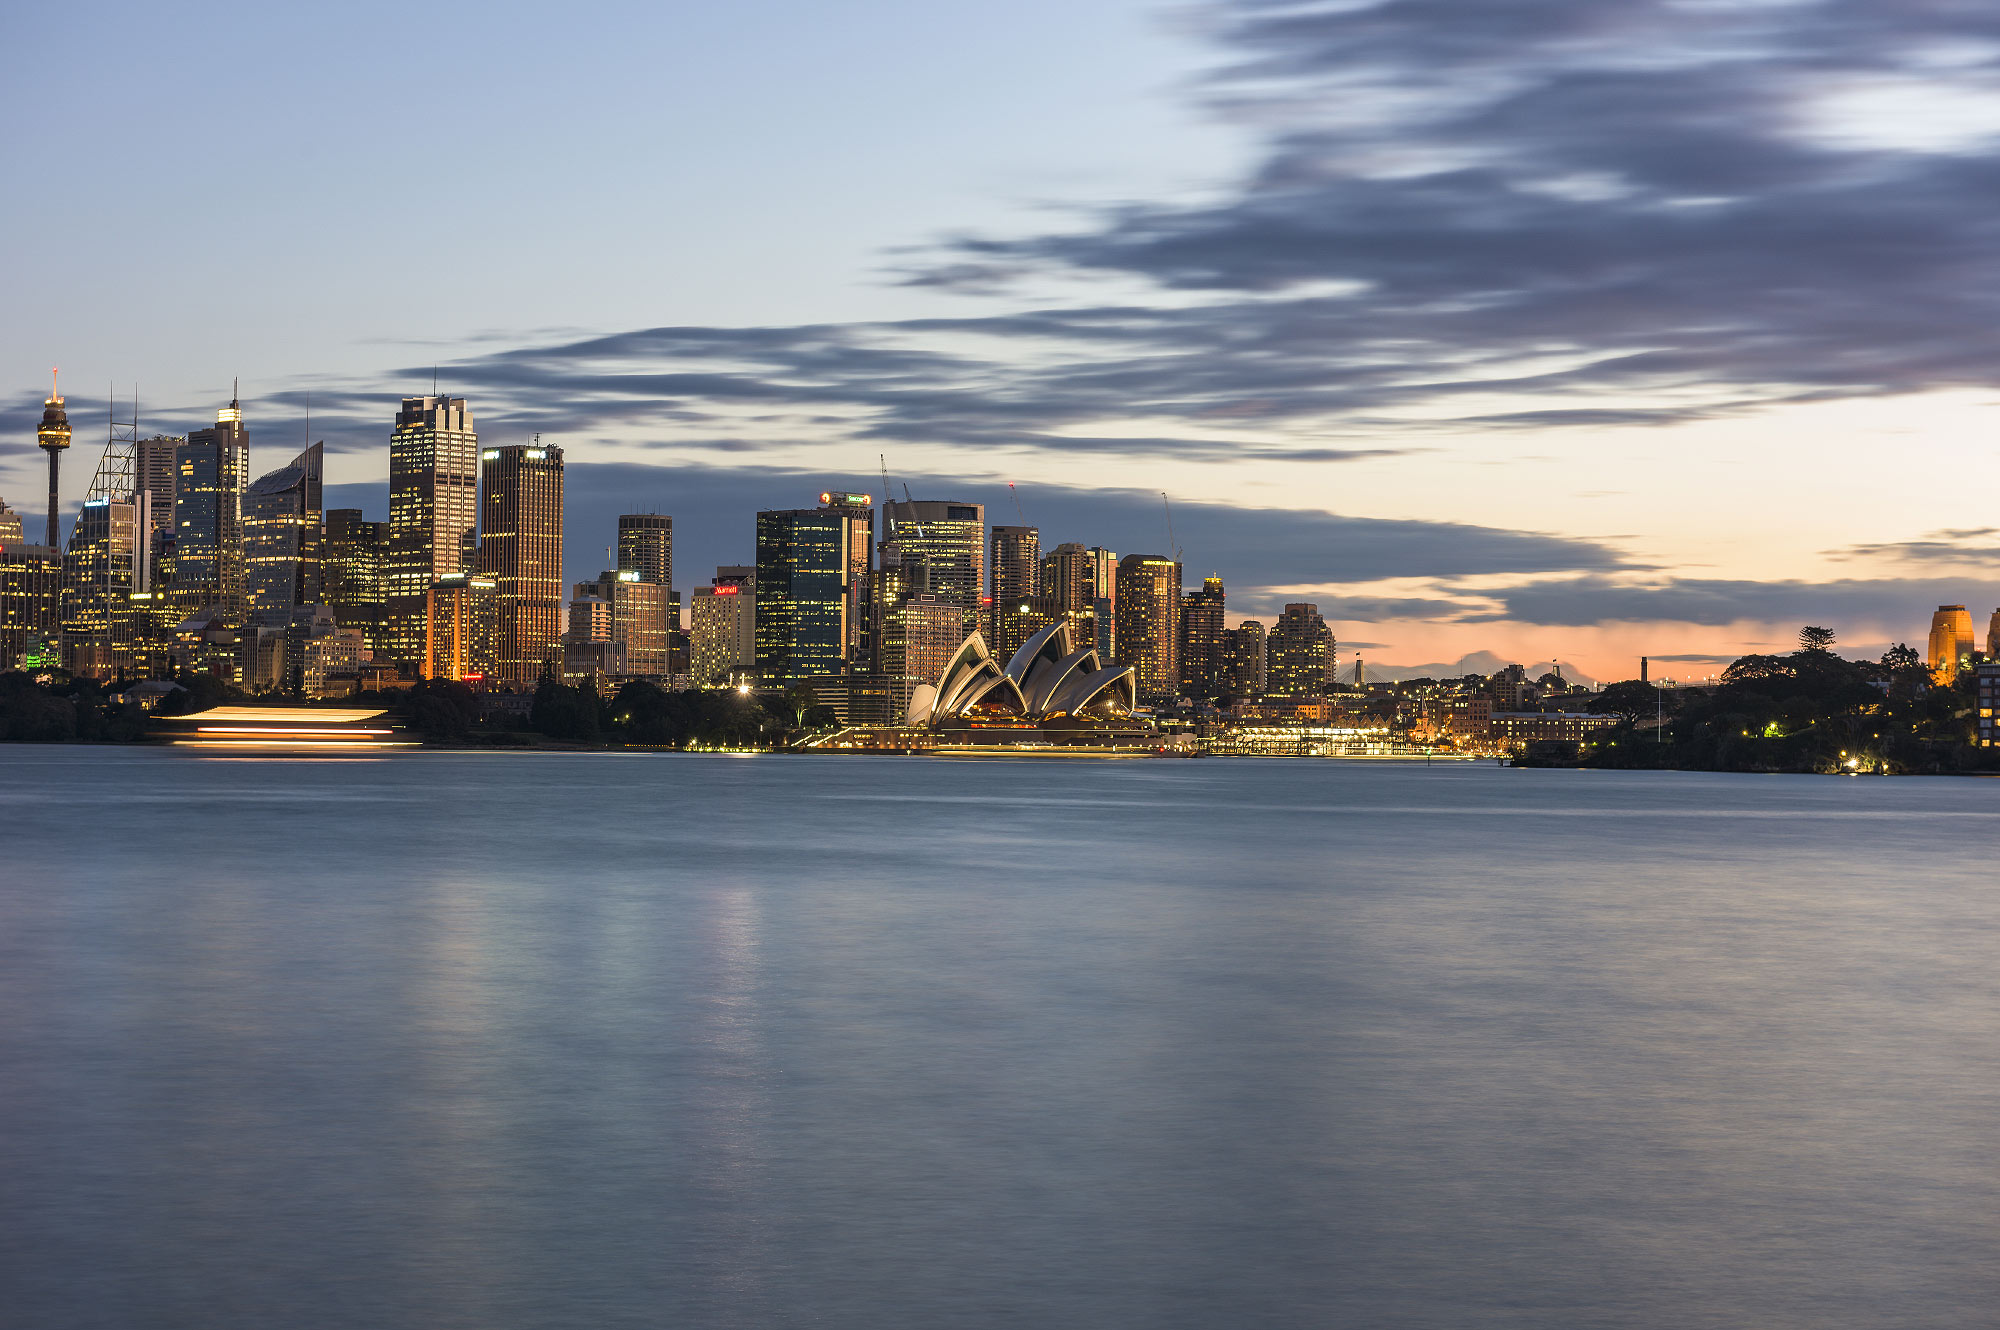 Sunset, Sydney Harbour Cruise